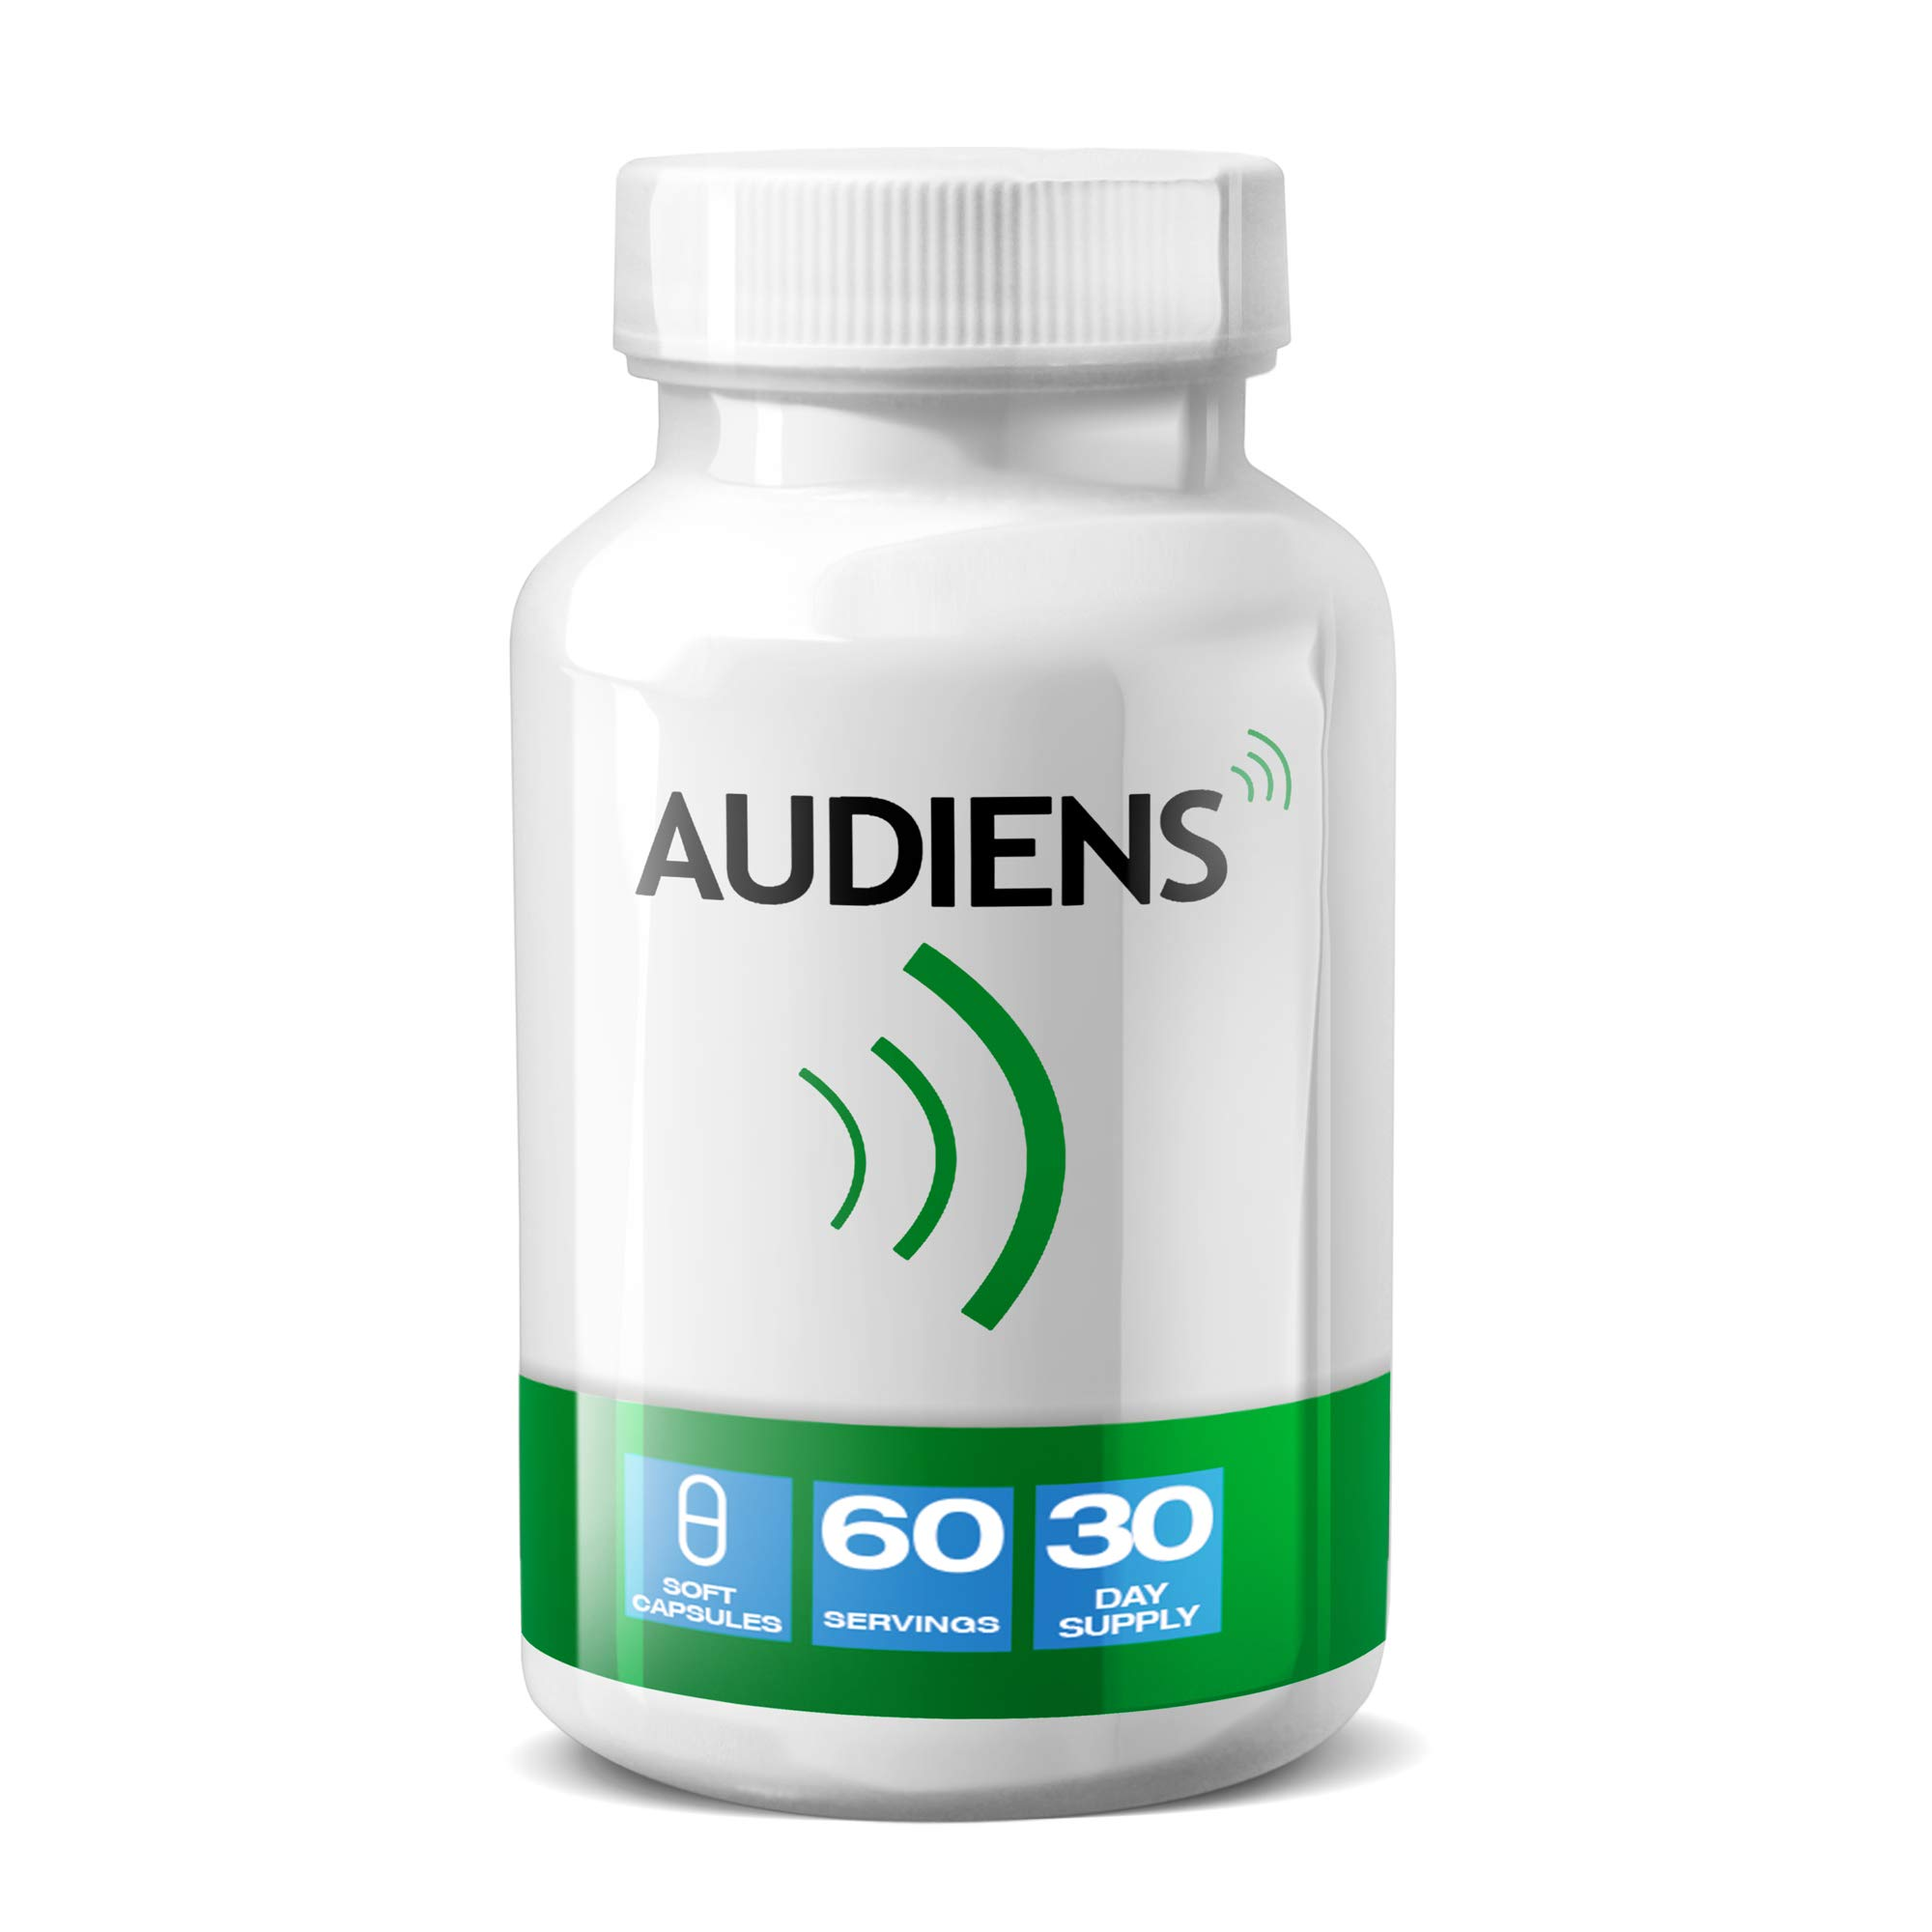 Tinnitus Relief for Ringing Ears - Natural Treatment to Improve Inner Ear Balance | Herbal Supplement & Remedy Designed to Reduce Subjective Tinnitus Symptoms by 40% | 90 Day Money Back Guarantee by Audiens - The Tinnitus Pill